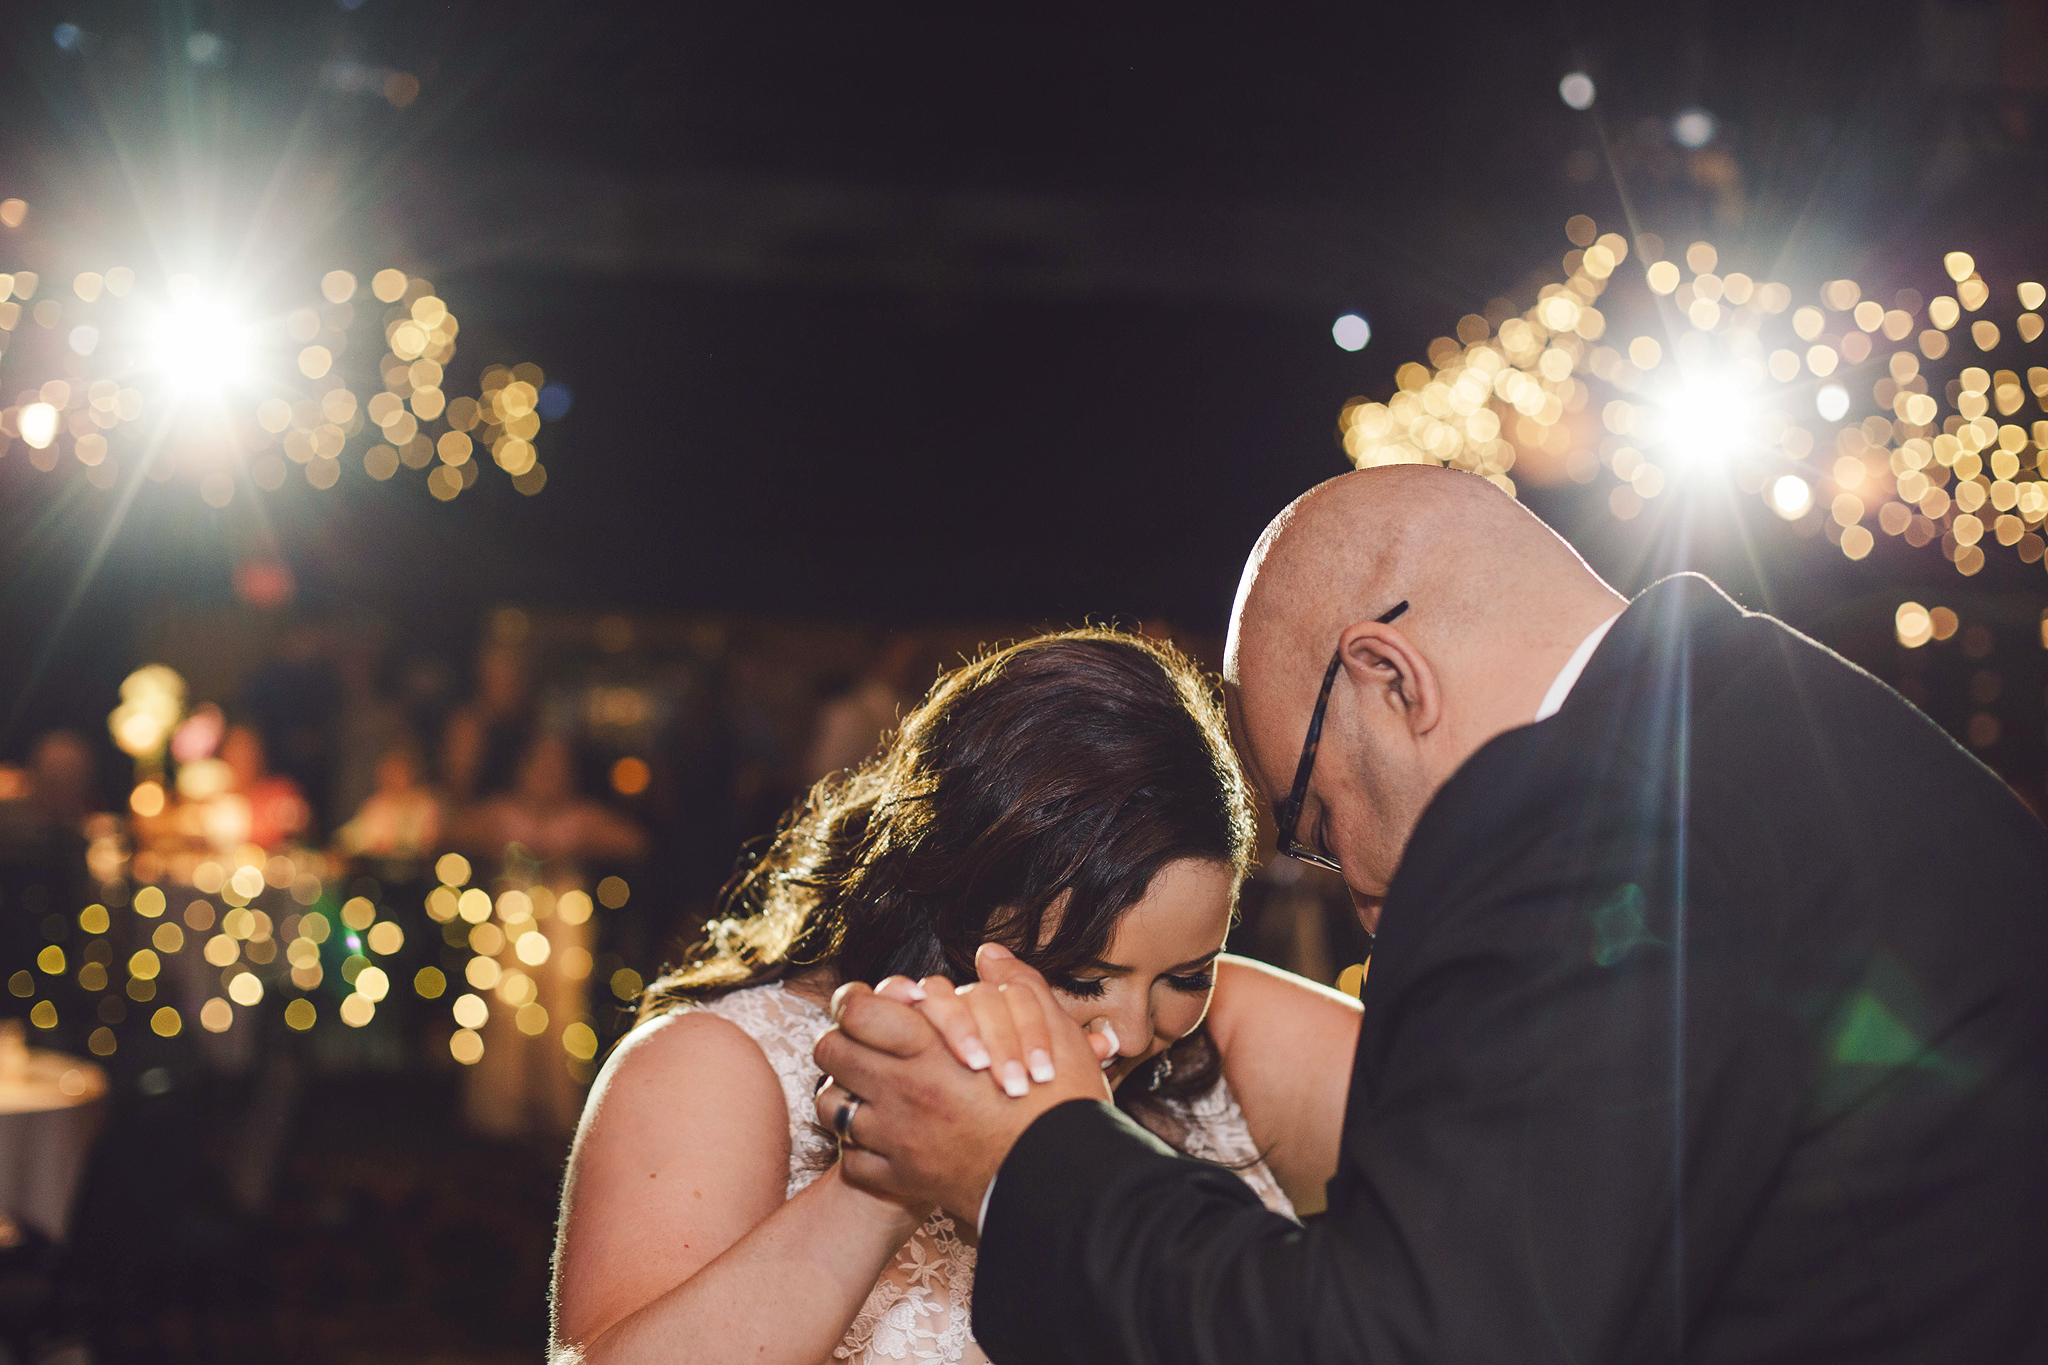 13-Father-Daughter-Dance-Web-4.jpg